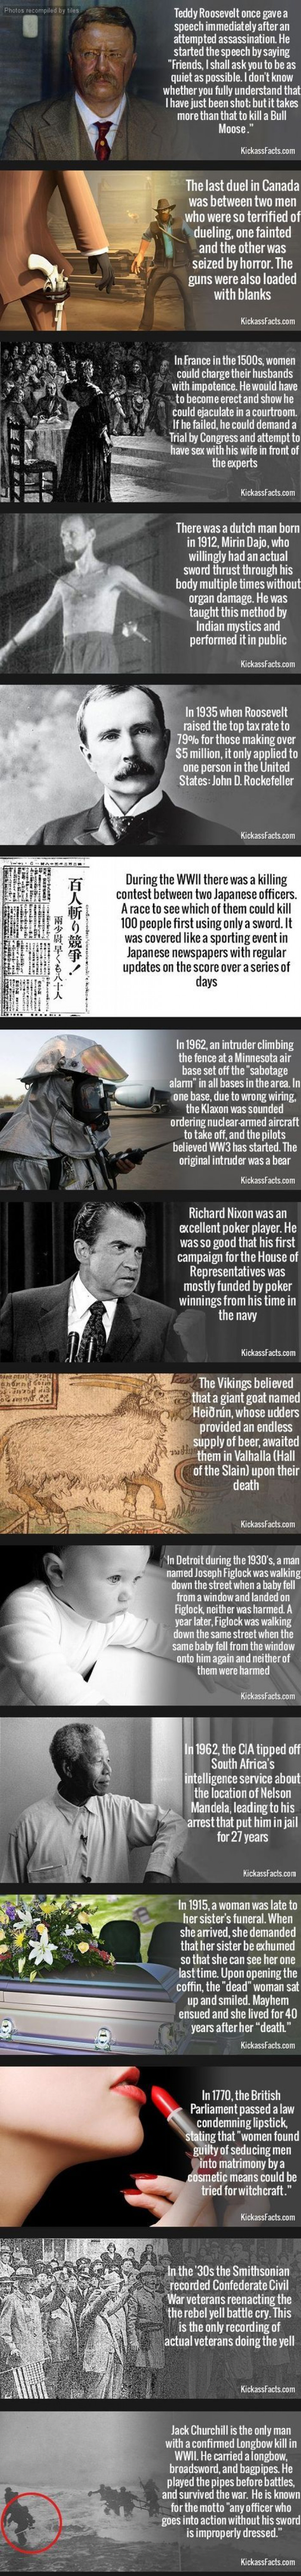 15 Strange History Facts That Will Probably Startle You